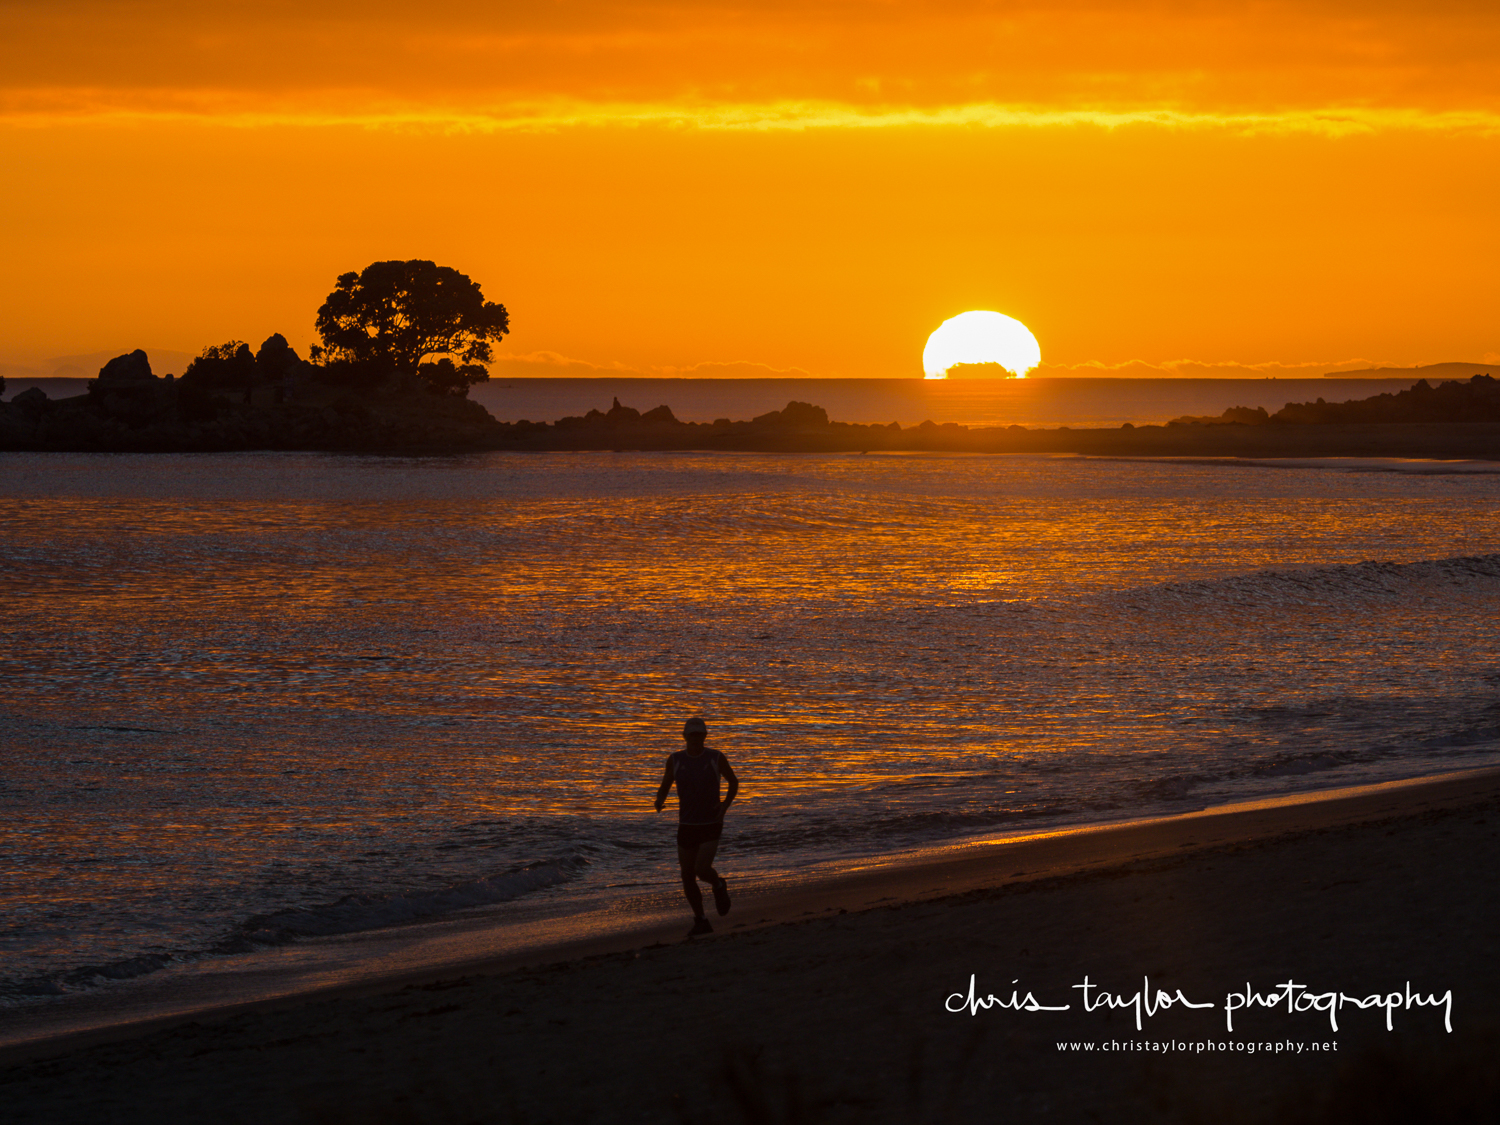 Mount Maunganui Beach, Bay of Plenty, NZ. 1/800 sec @ f/4, ISO 200